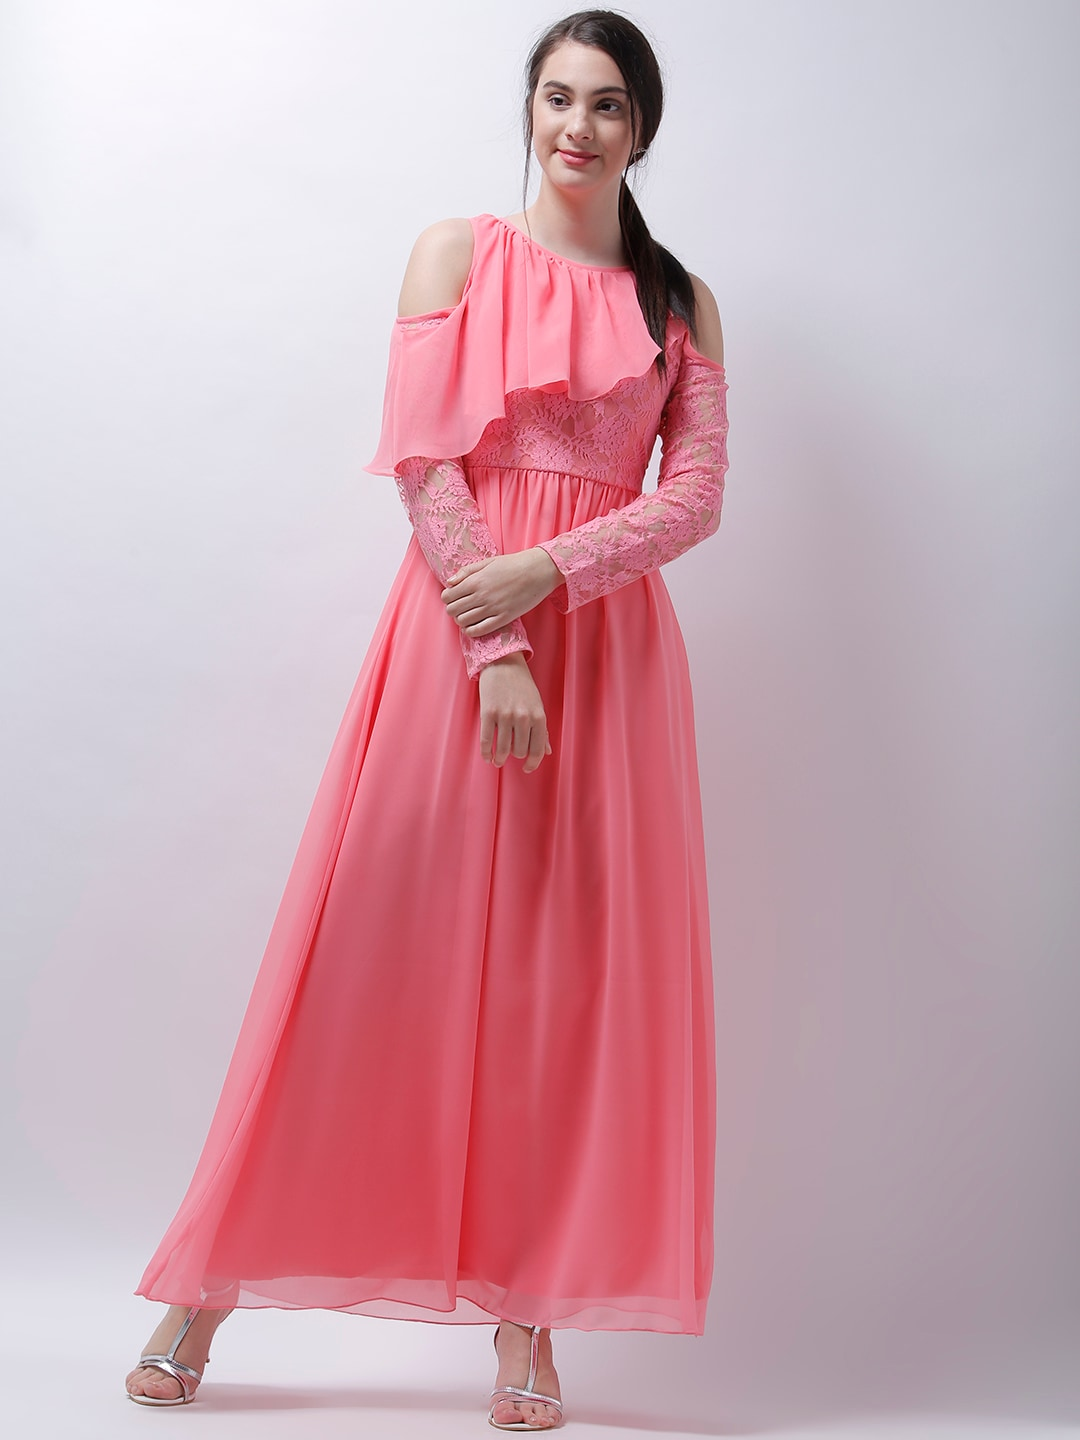 20d8b34bc589 Maxi Dress Long Design - Buy Maxi Dress Long Design online in India